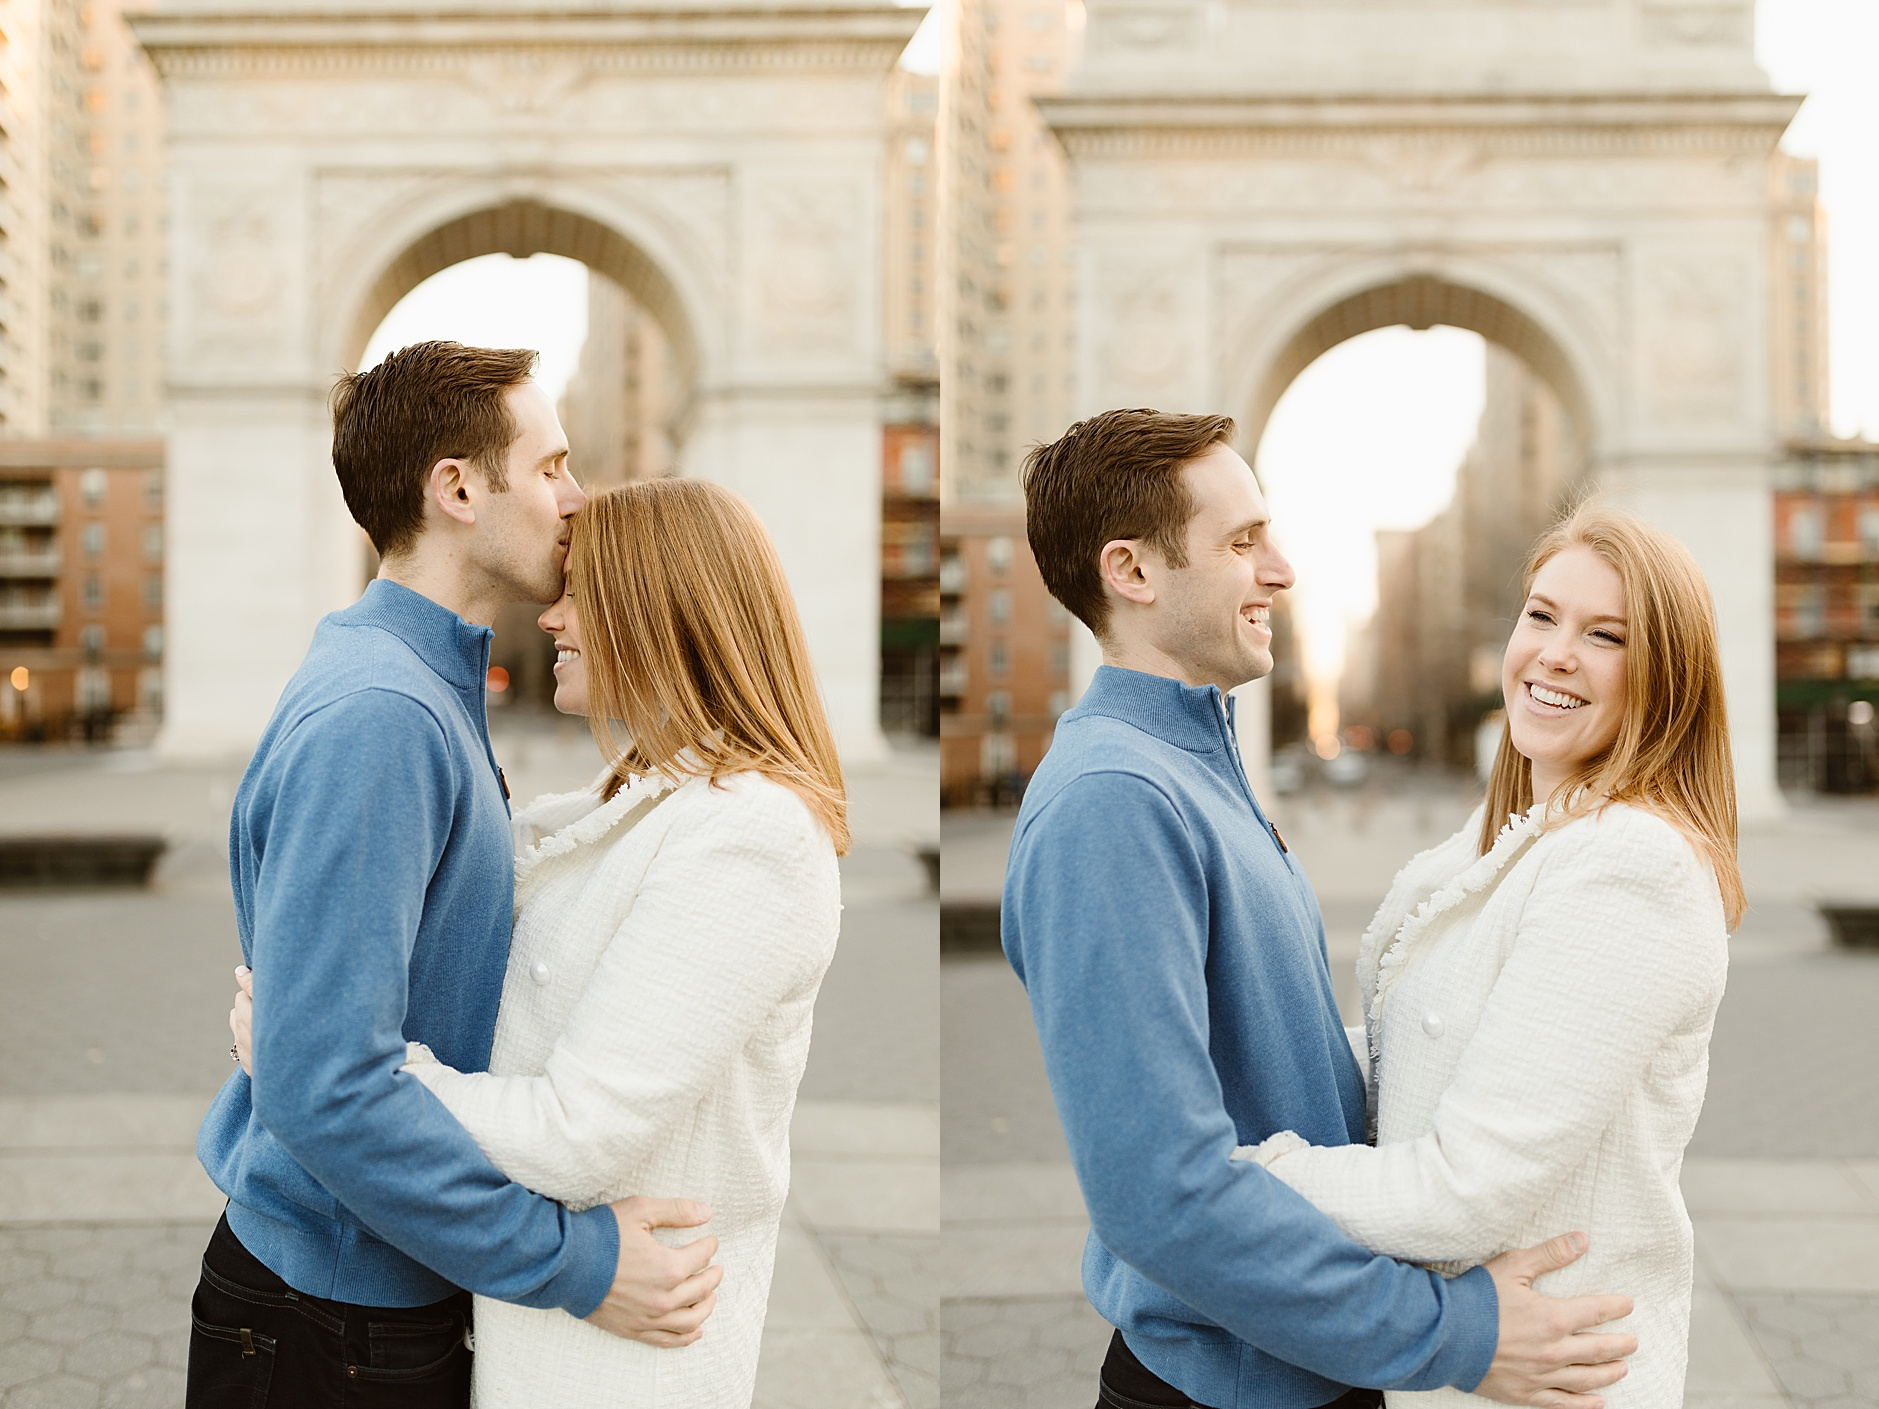 Fall Engagement Session Outfit Ideas